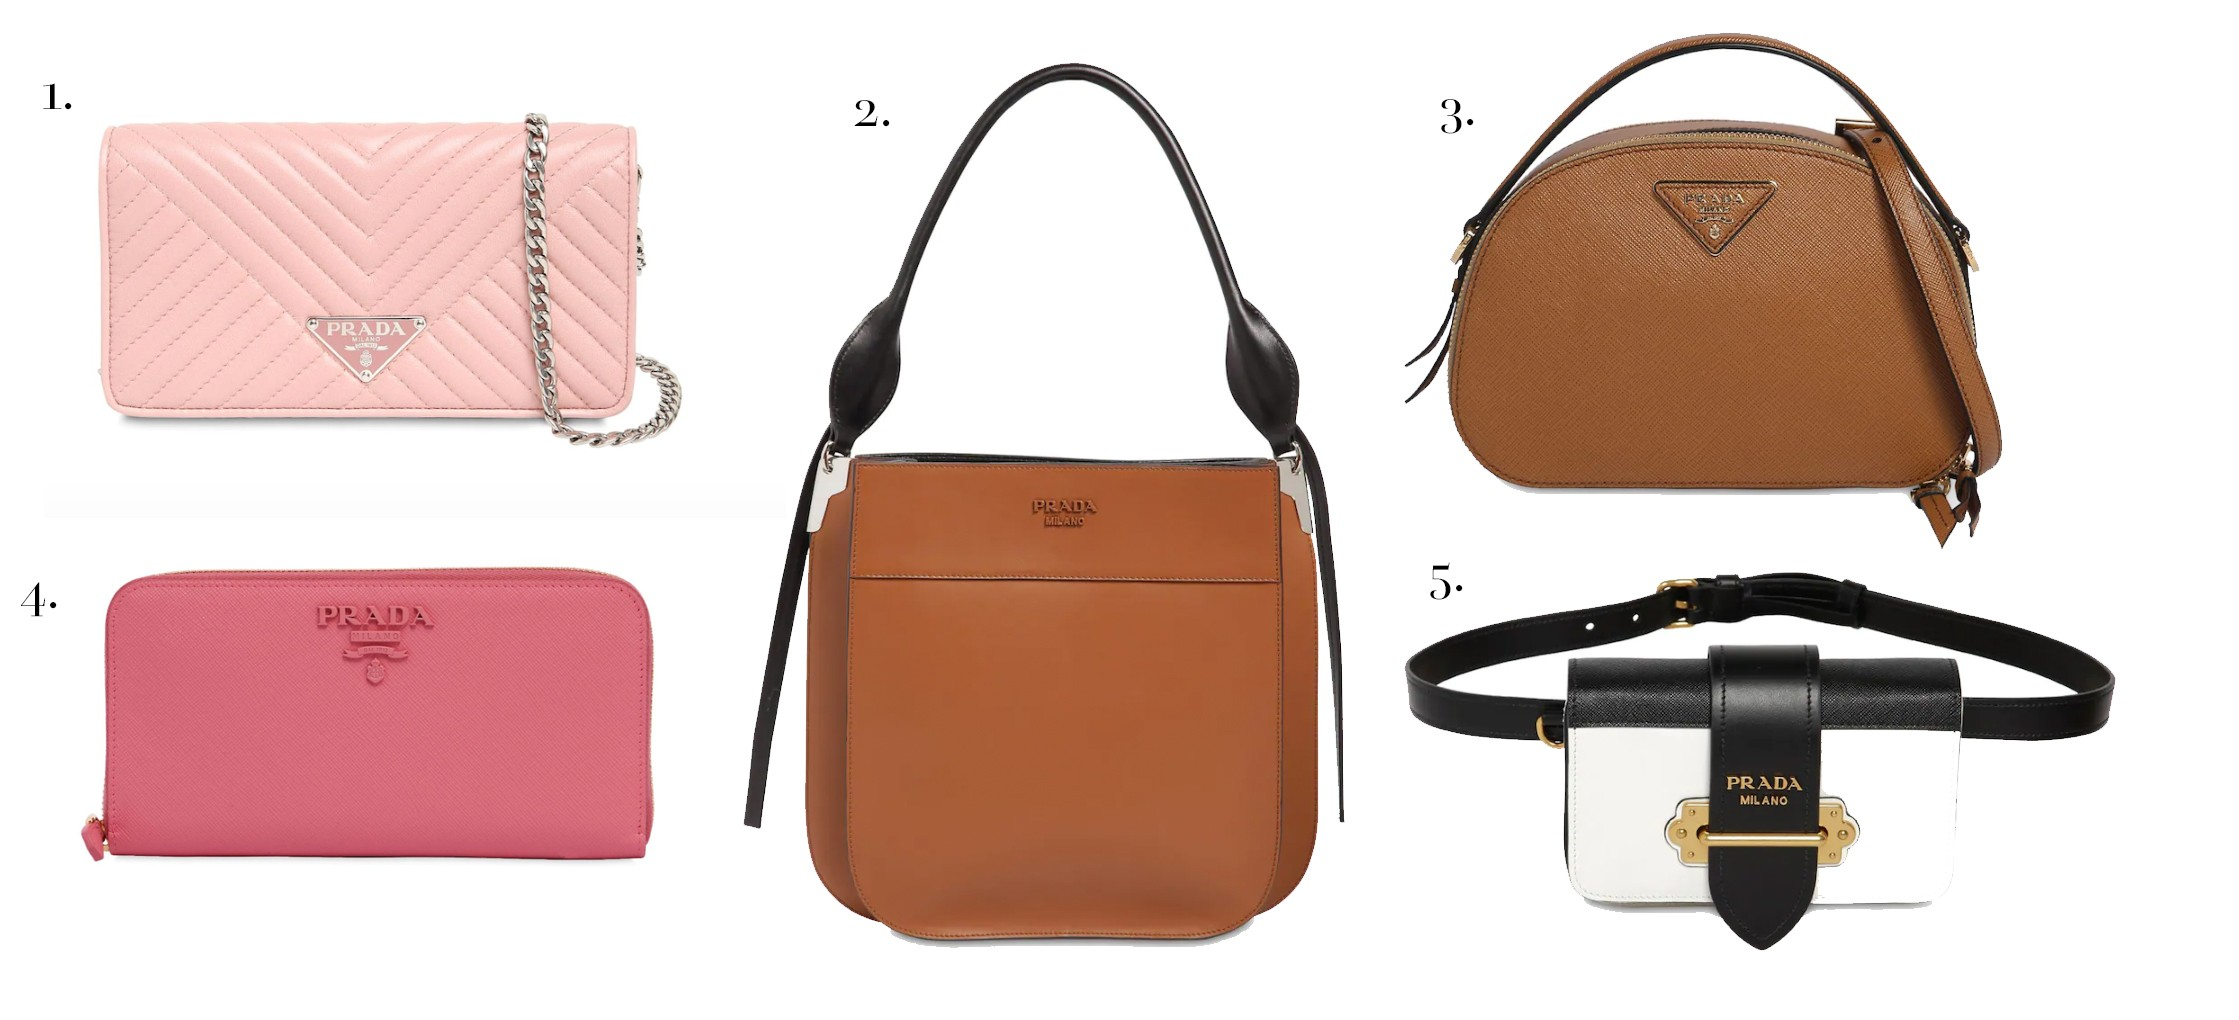 f7f955d2db4613 ... for me are the Prada Double Bag (incredible at 40% off!), the Prada  Saffiano Pink Top Handle and pretty much the entire Tory Burch line that  they stock.